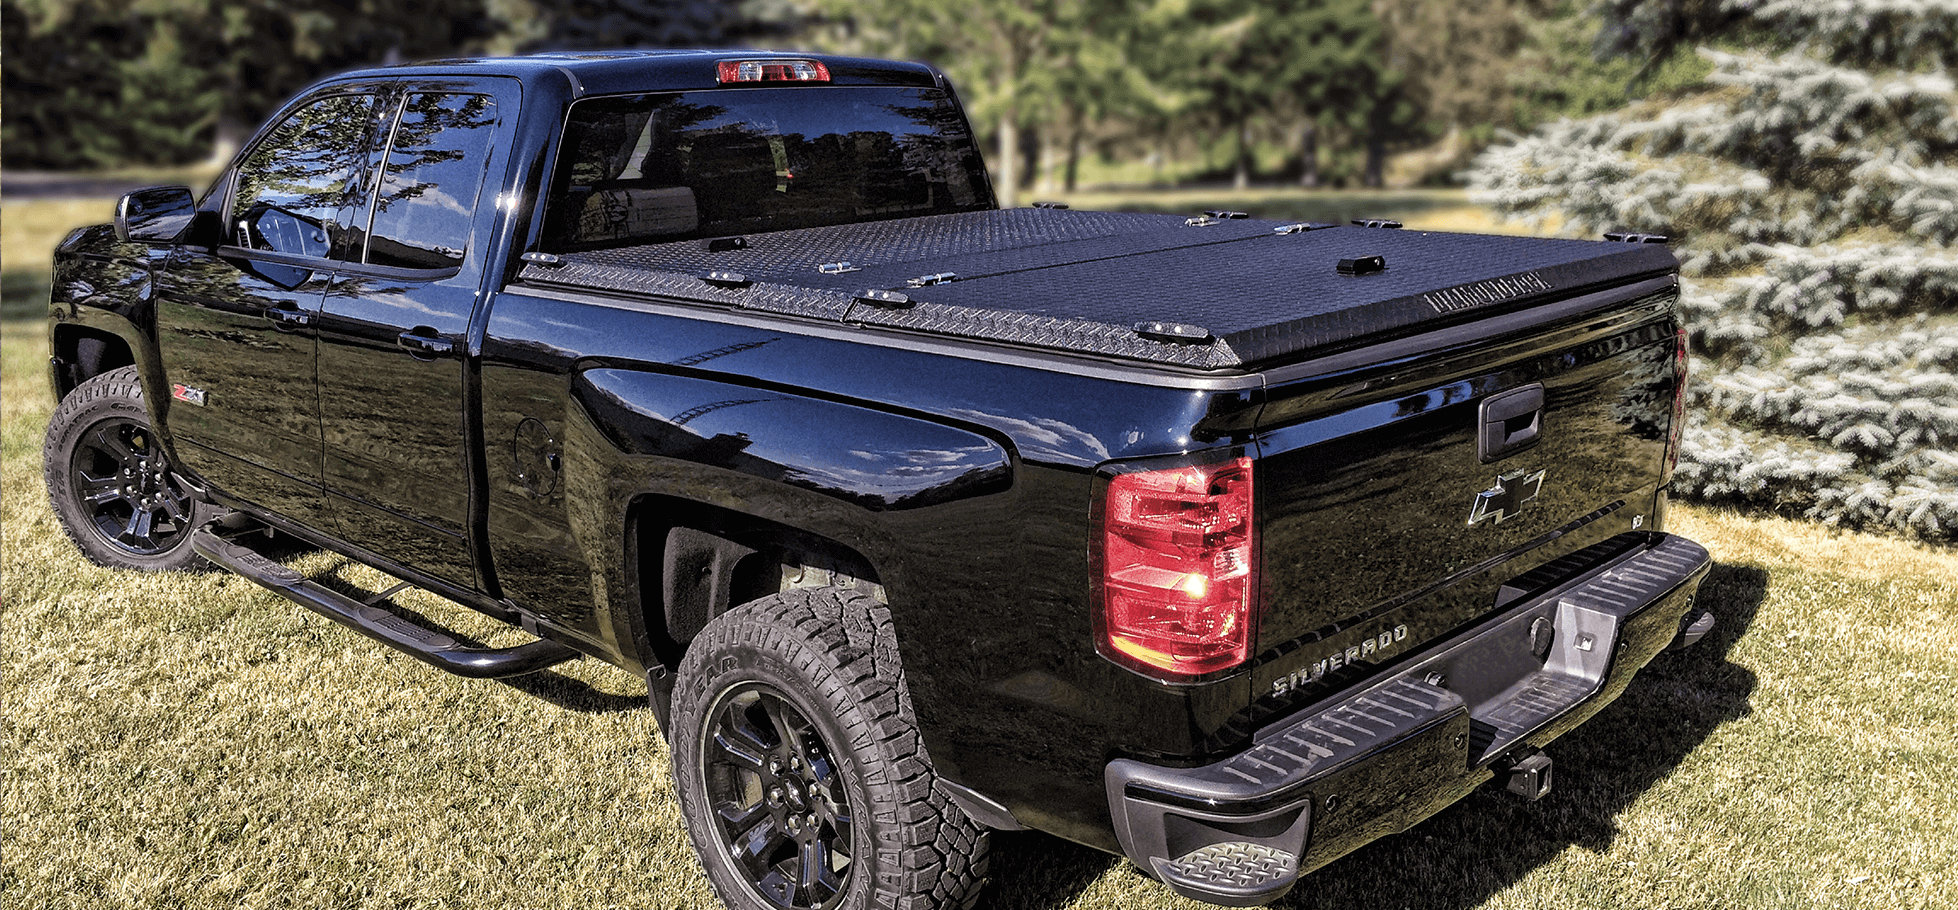 Diamondback Tonneau Cover >> Heavy Duty Hard Tonneau Covers - DiamondBack HD – DiamondBack Covers